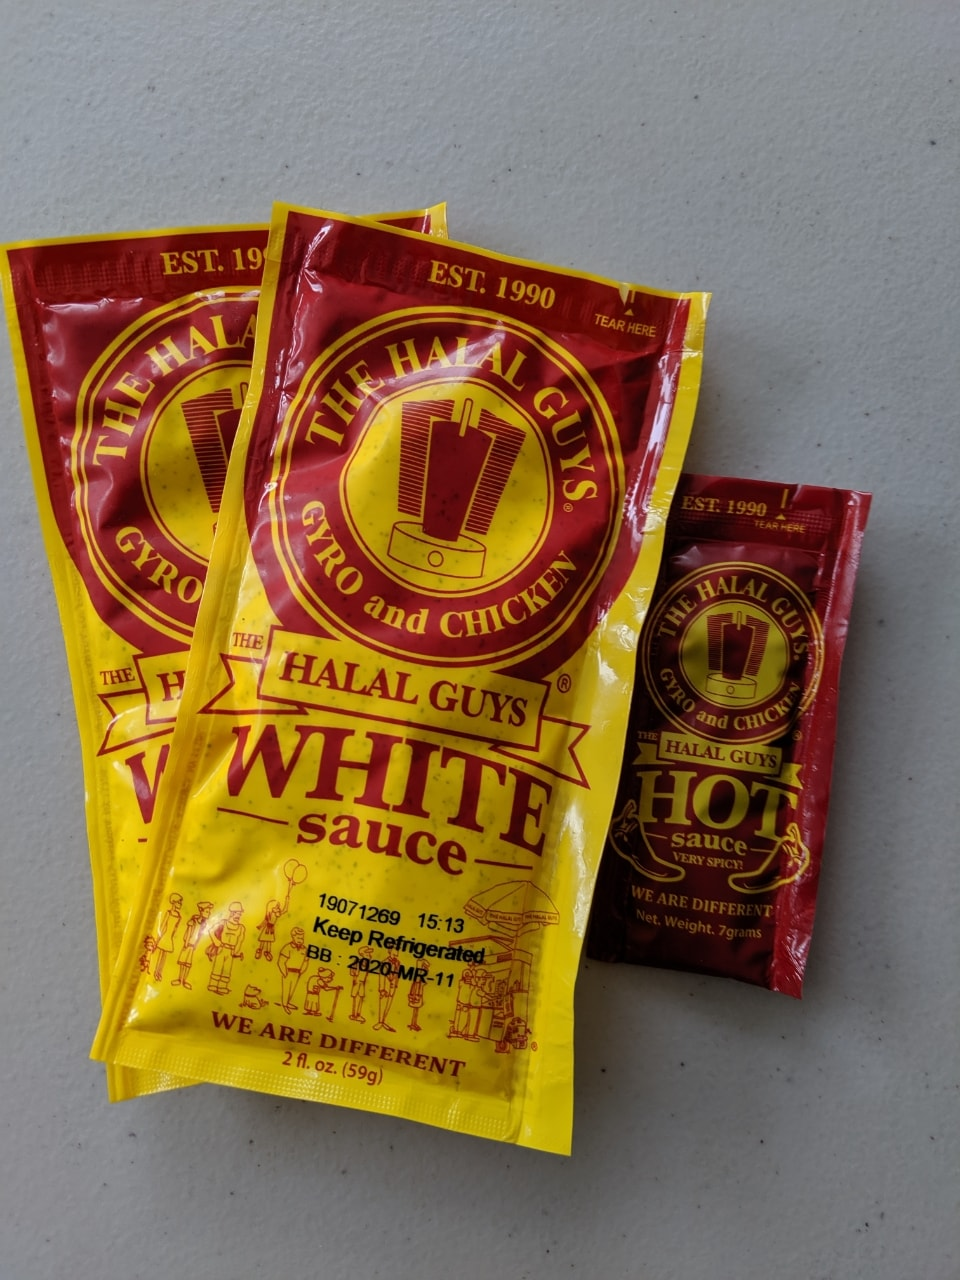 The Halal Guys White Sauce and Hot Sauce